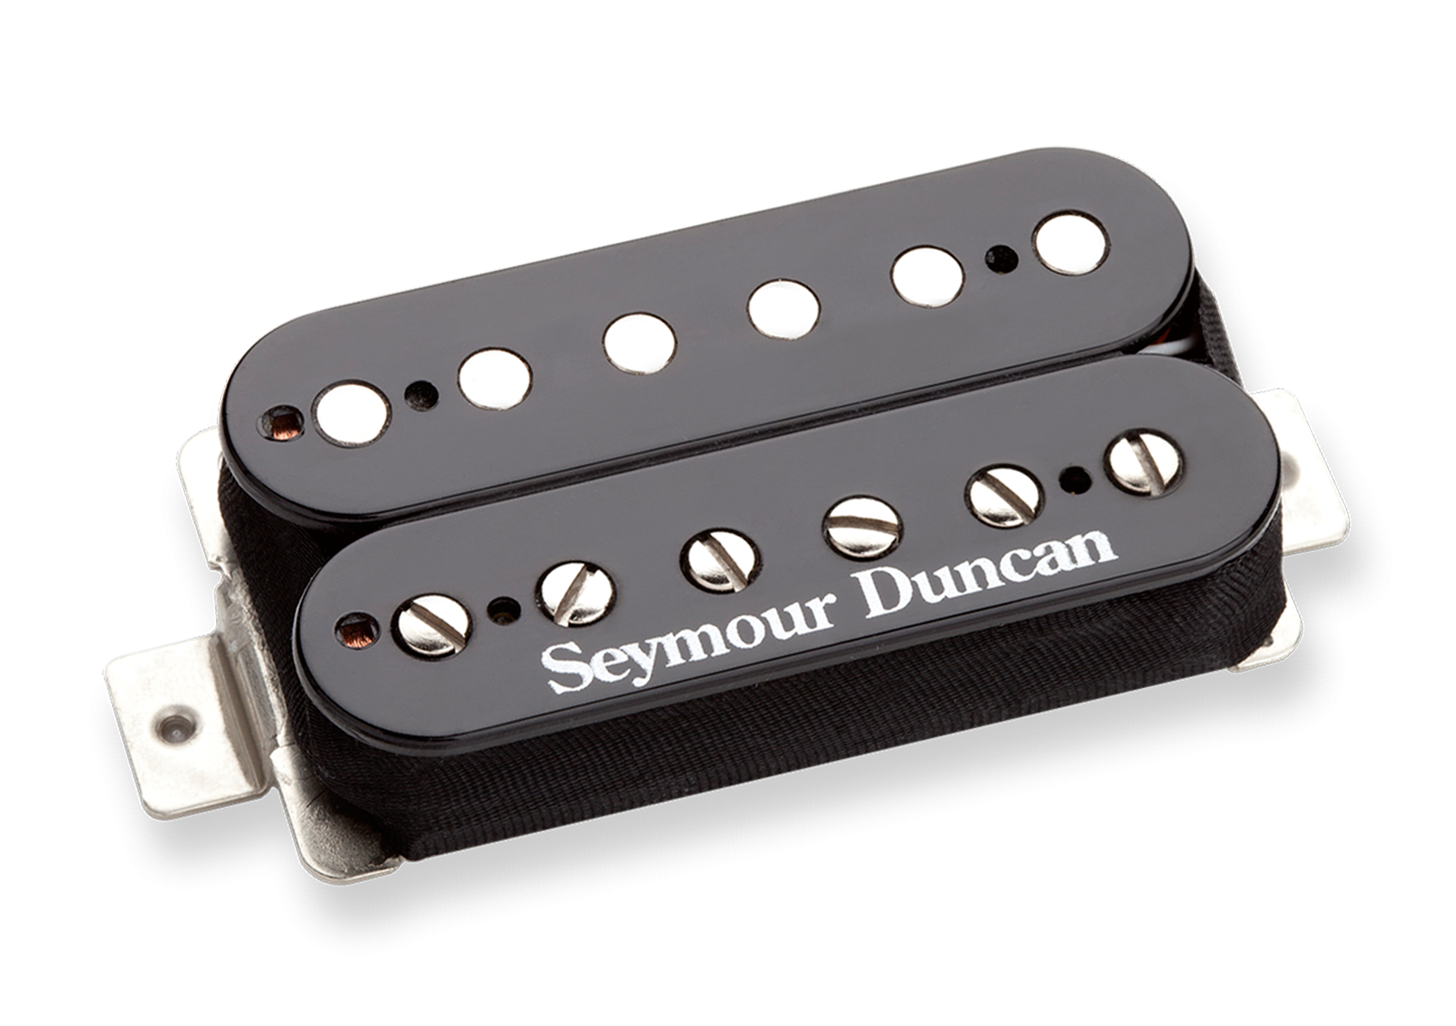 Seymour Duncan Whole Lotta Humbucker - SH-18B Bridge Black